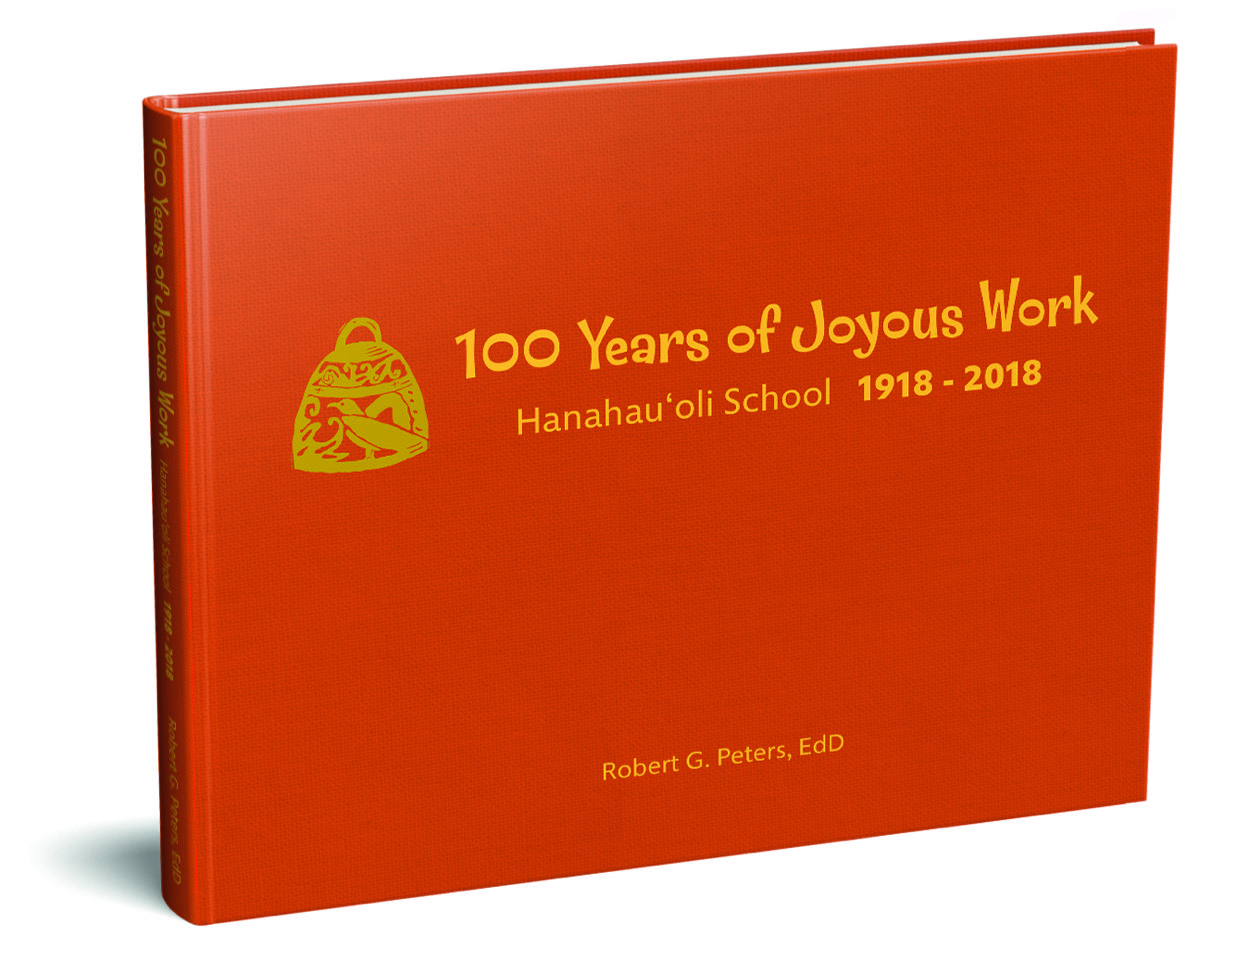 100 Years of Joyous Work - The Hanahau'oli Centennial commemorative book, 100 Years of Joyous Work is a 170-page hardcover book penned by Hanahau'oli's long time head of School, Dr. Robert Peters. It provides a captivating picture of Hanahau'oli as one of the nation's first progressive schools, celebrates its rich history, and honors the legacy of the people and traditions that make Hanahau'oli special. Photos, maps, and drawings, both historical and modern day, fill the pages, complementing the rich and intimate narrative. Also included are a 100-year historical timeline and class pictures dating back to 1922.